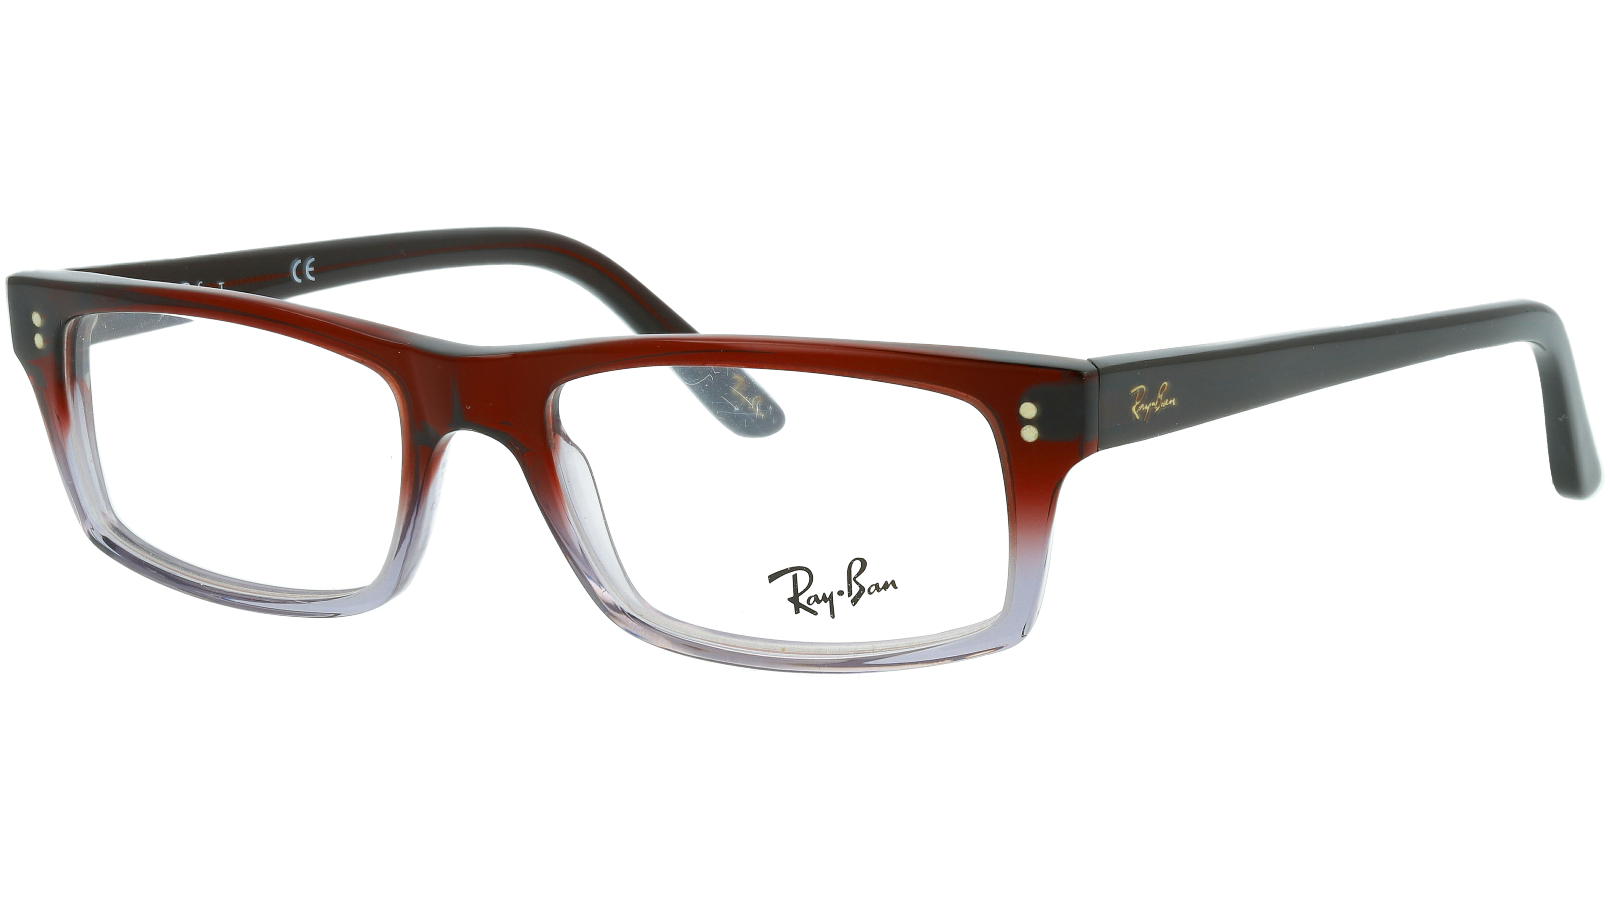 Ray-Ban RB5237 5055 53 RED Glasses